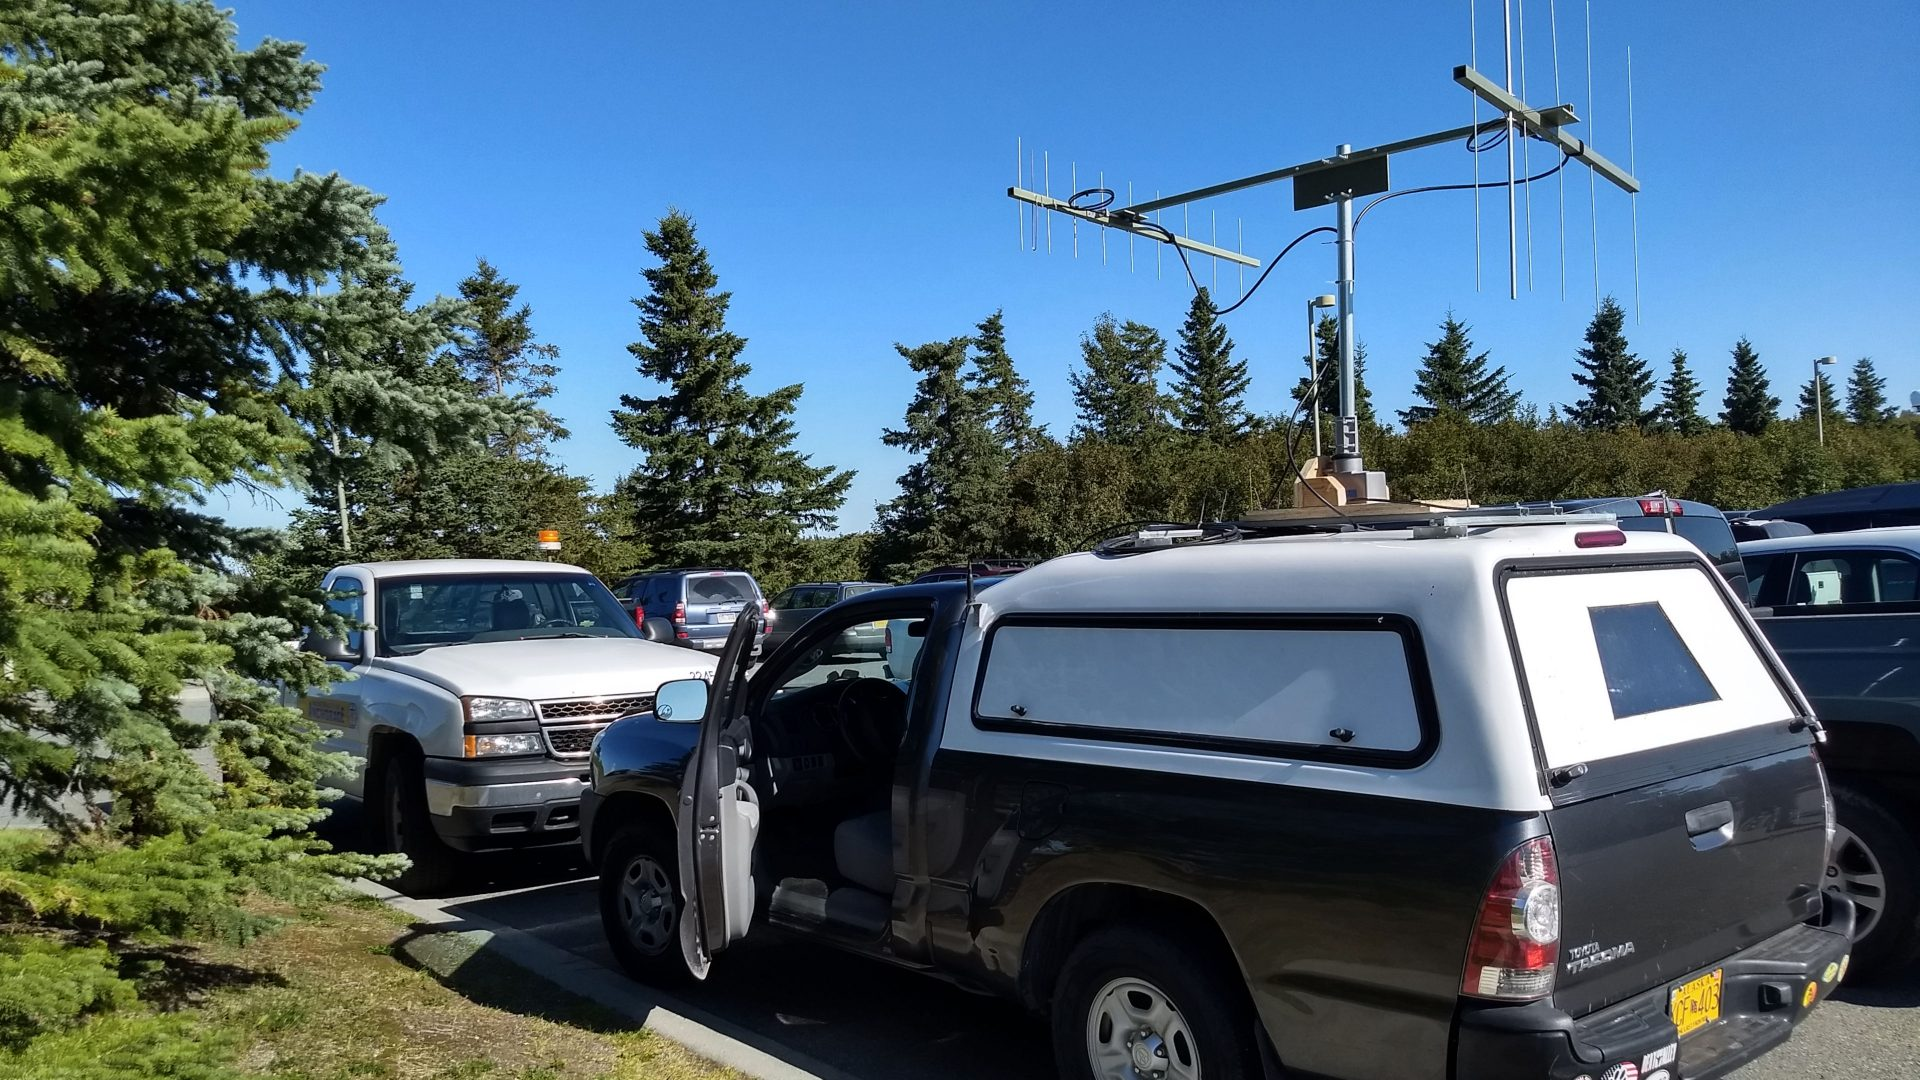 VHF contest rover in a parking lot in Anchorage